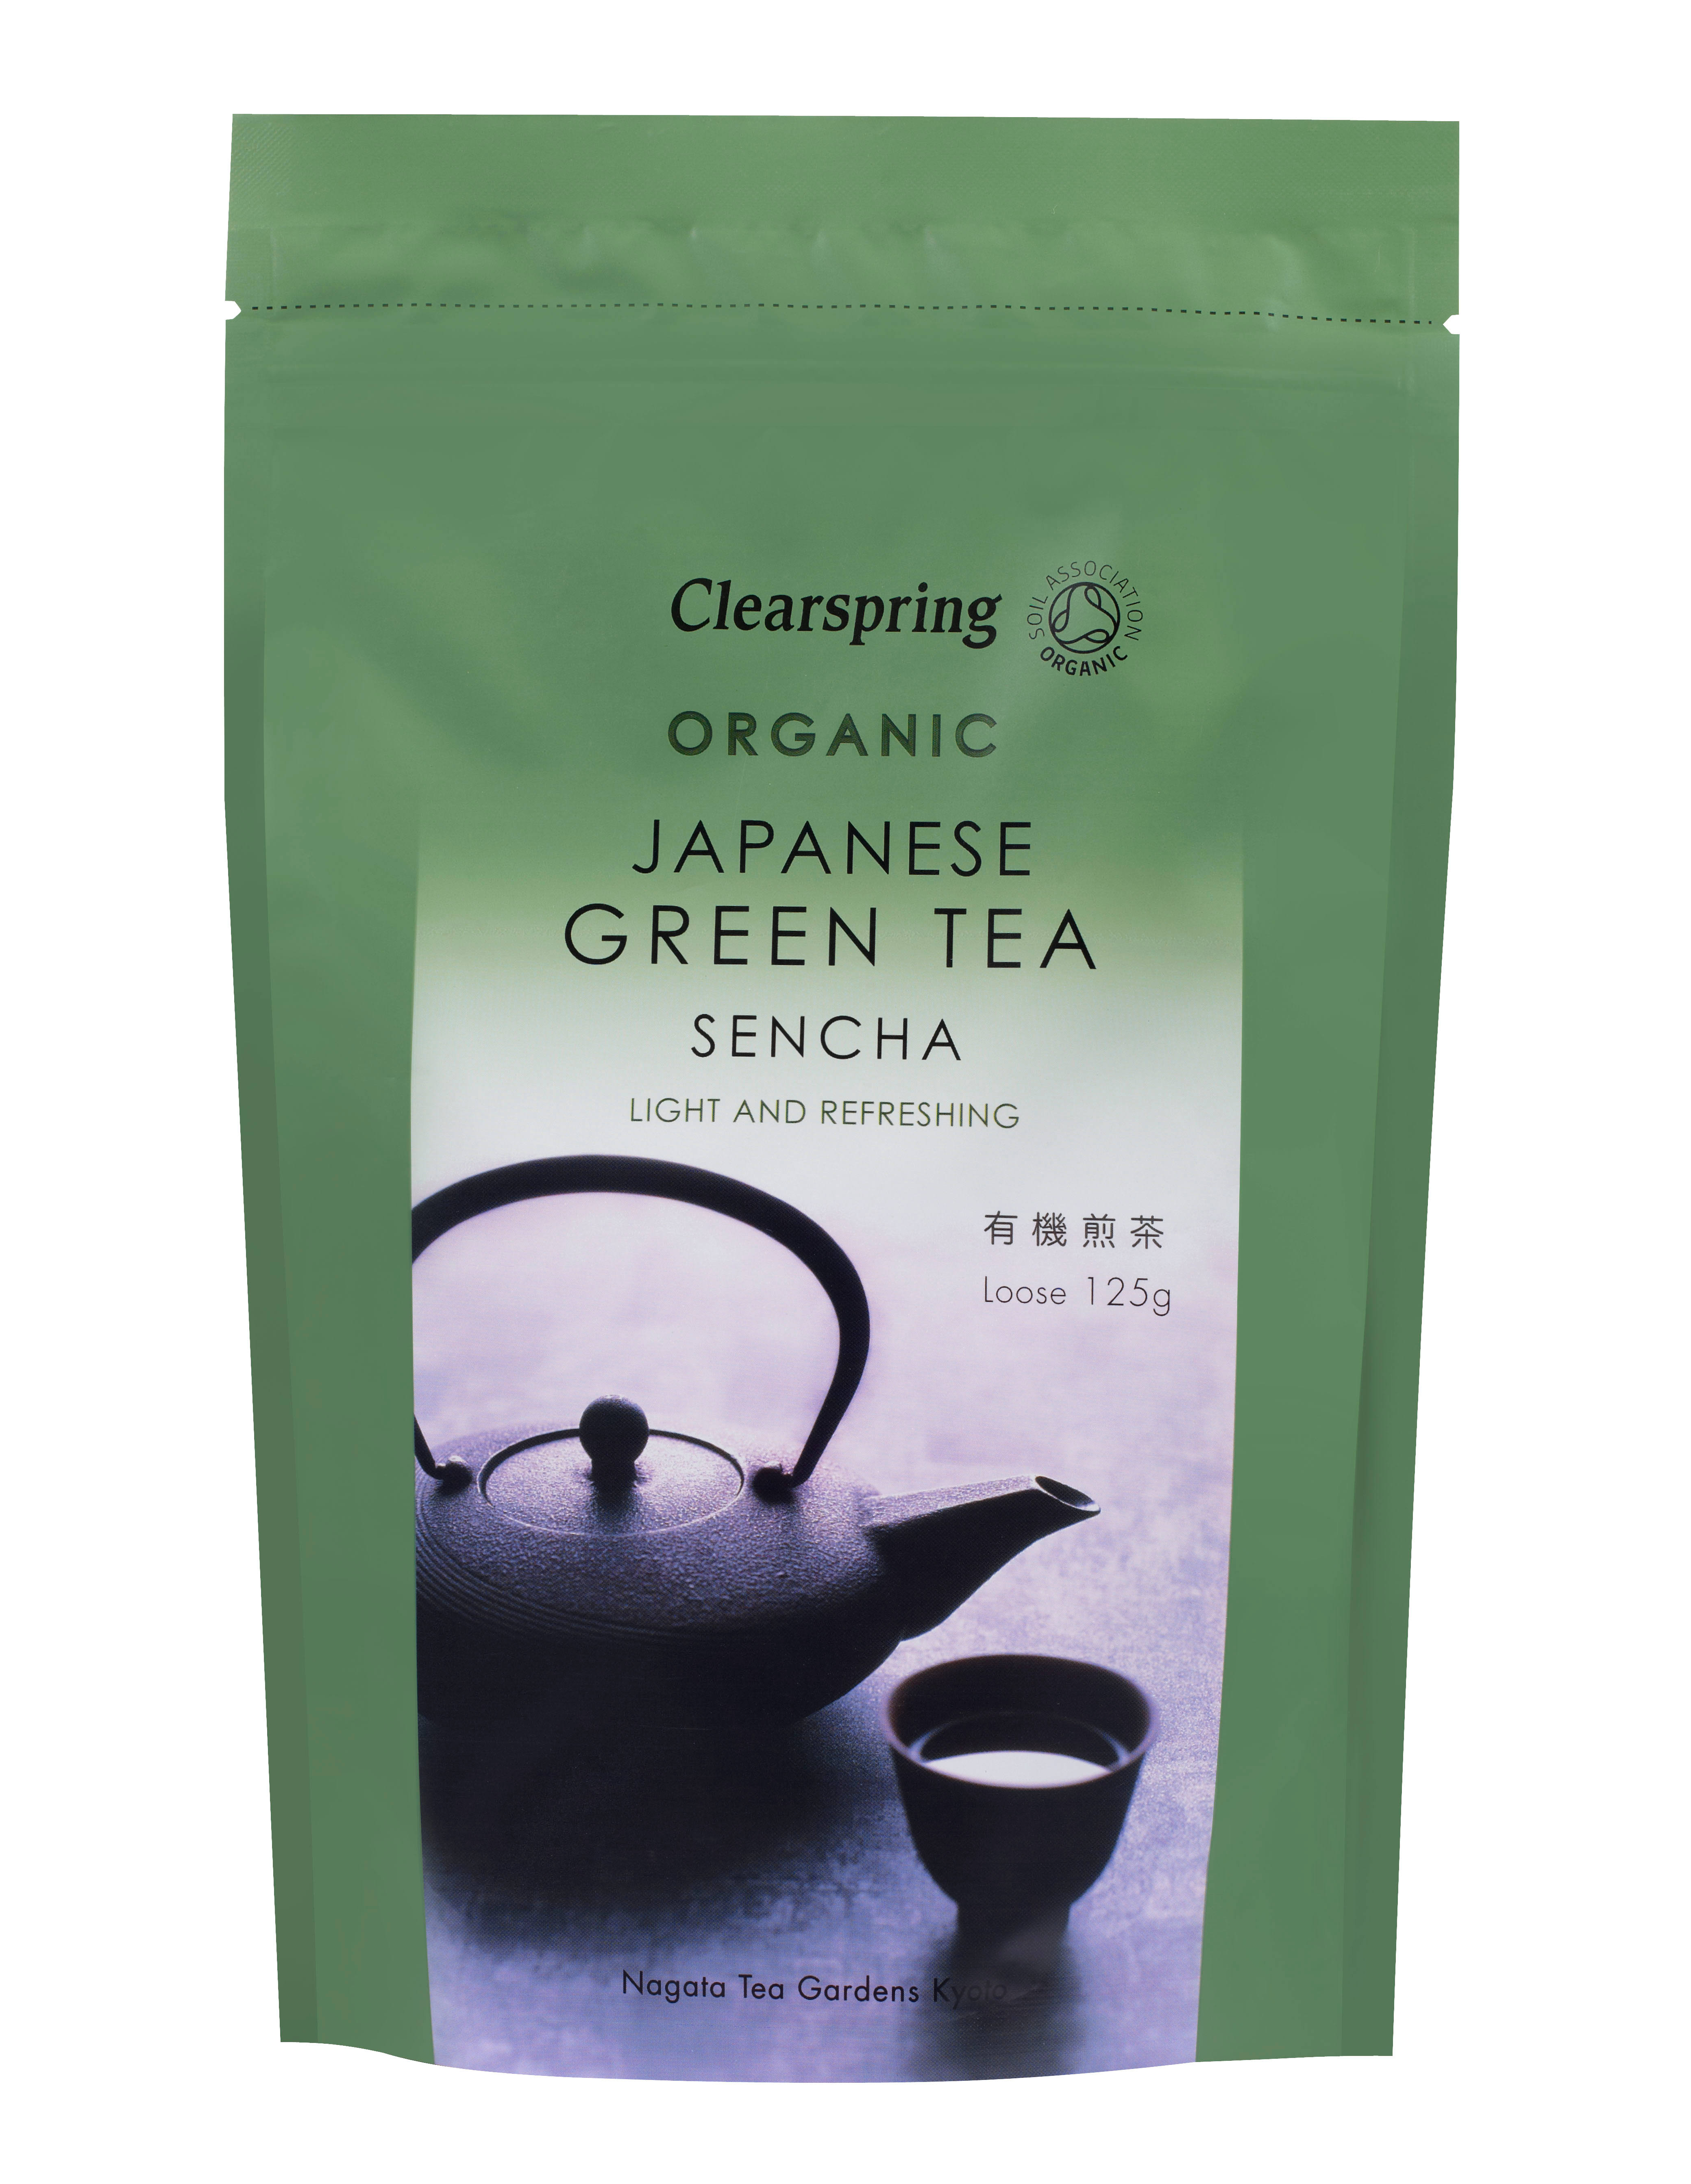 Clearspring Organic Japanese Green Tea - Sencha, 125g